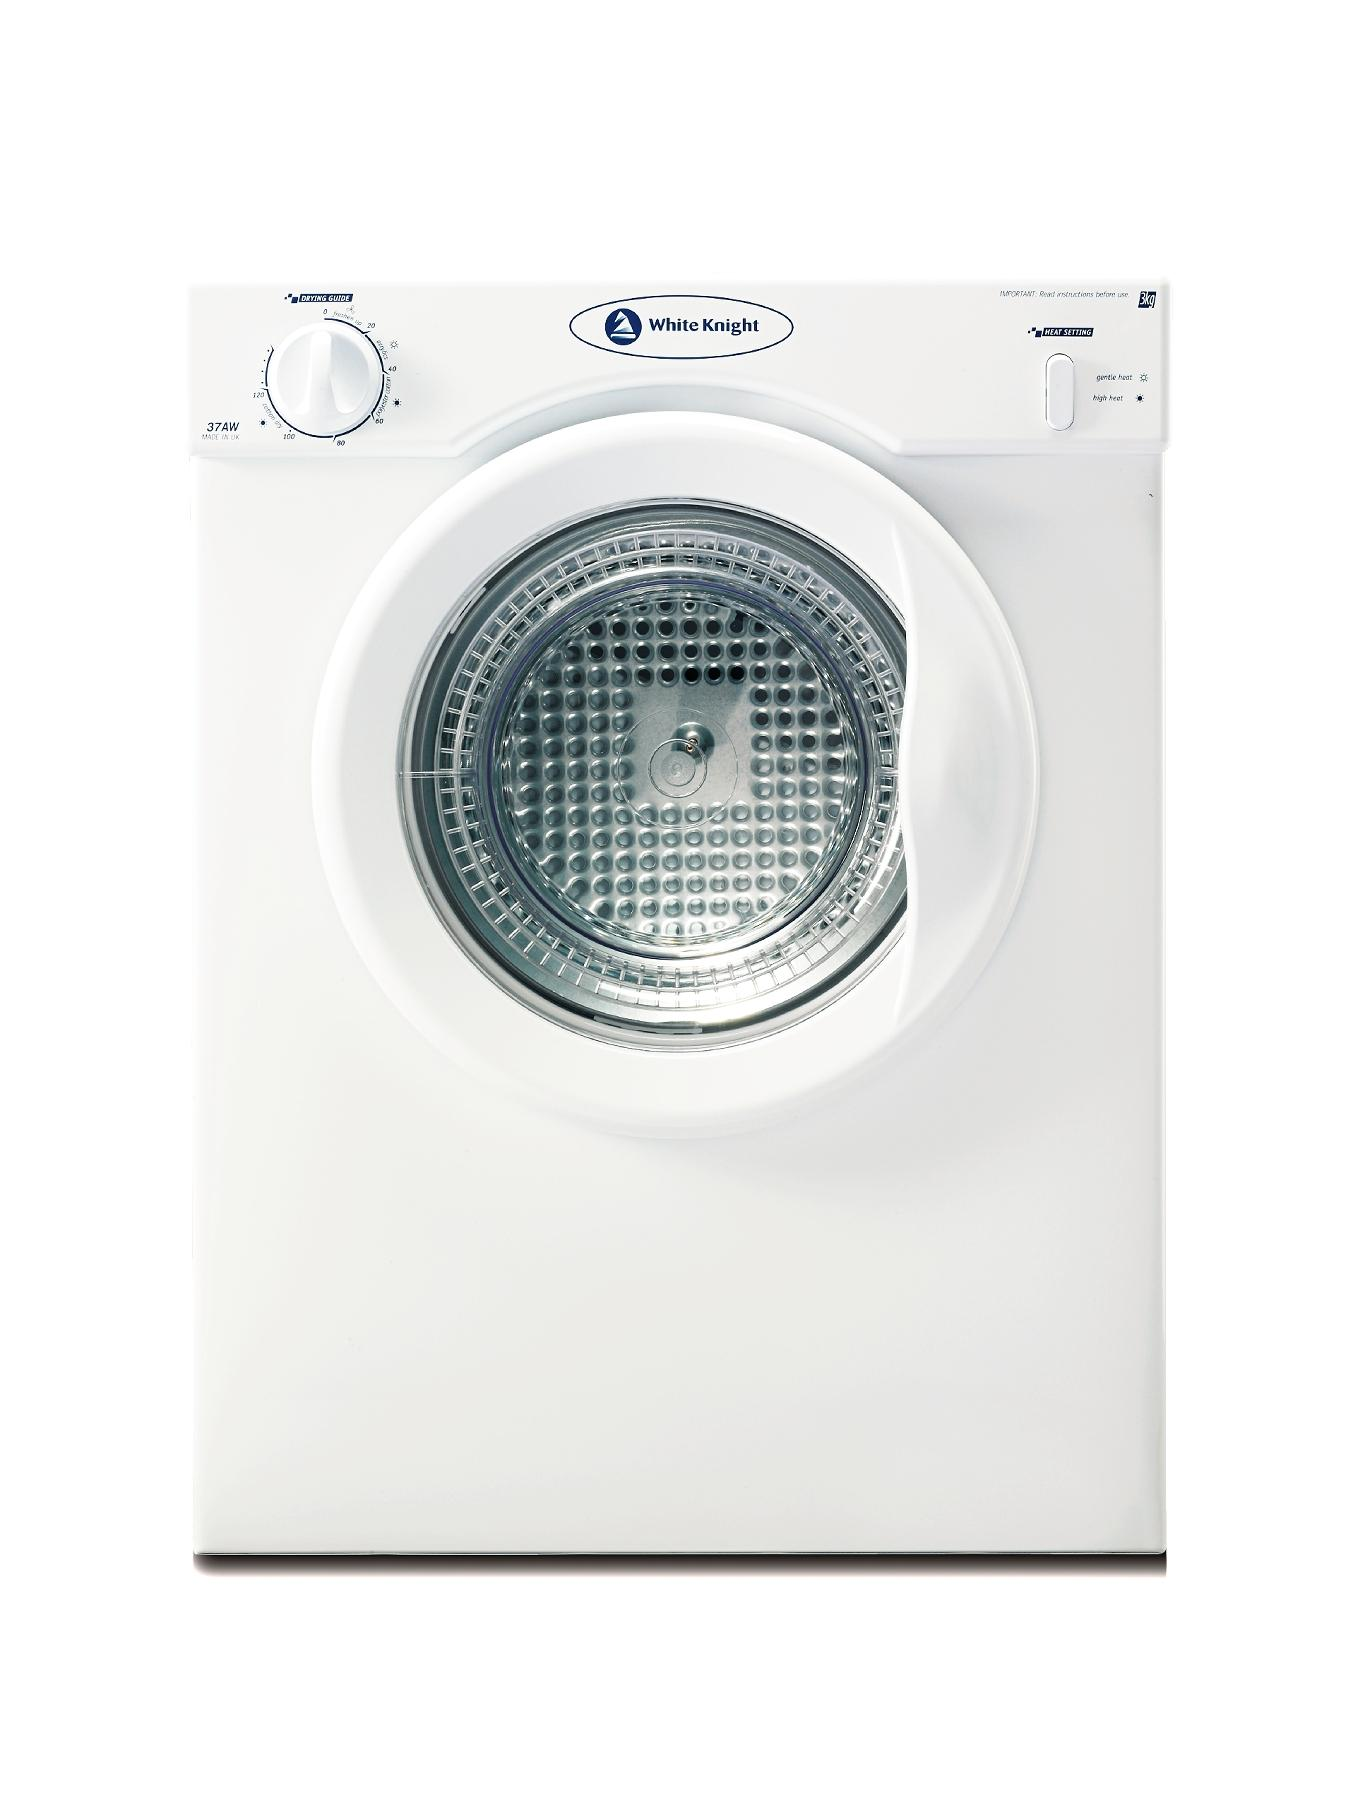 buy cheap compact tumble dryer compare tumble dryers. Black Bedroom Furniture Sets. Home Design Ideas